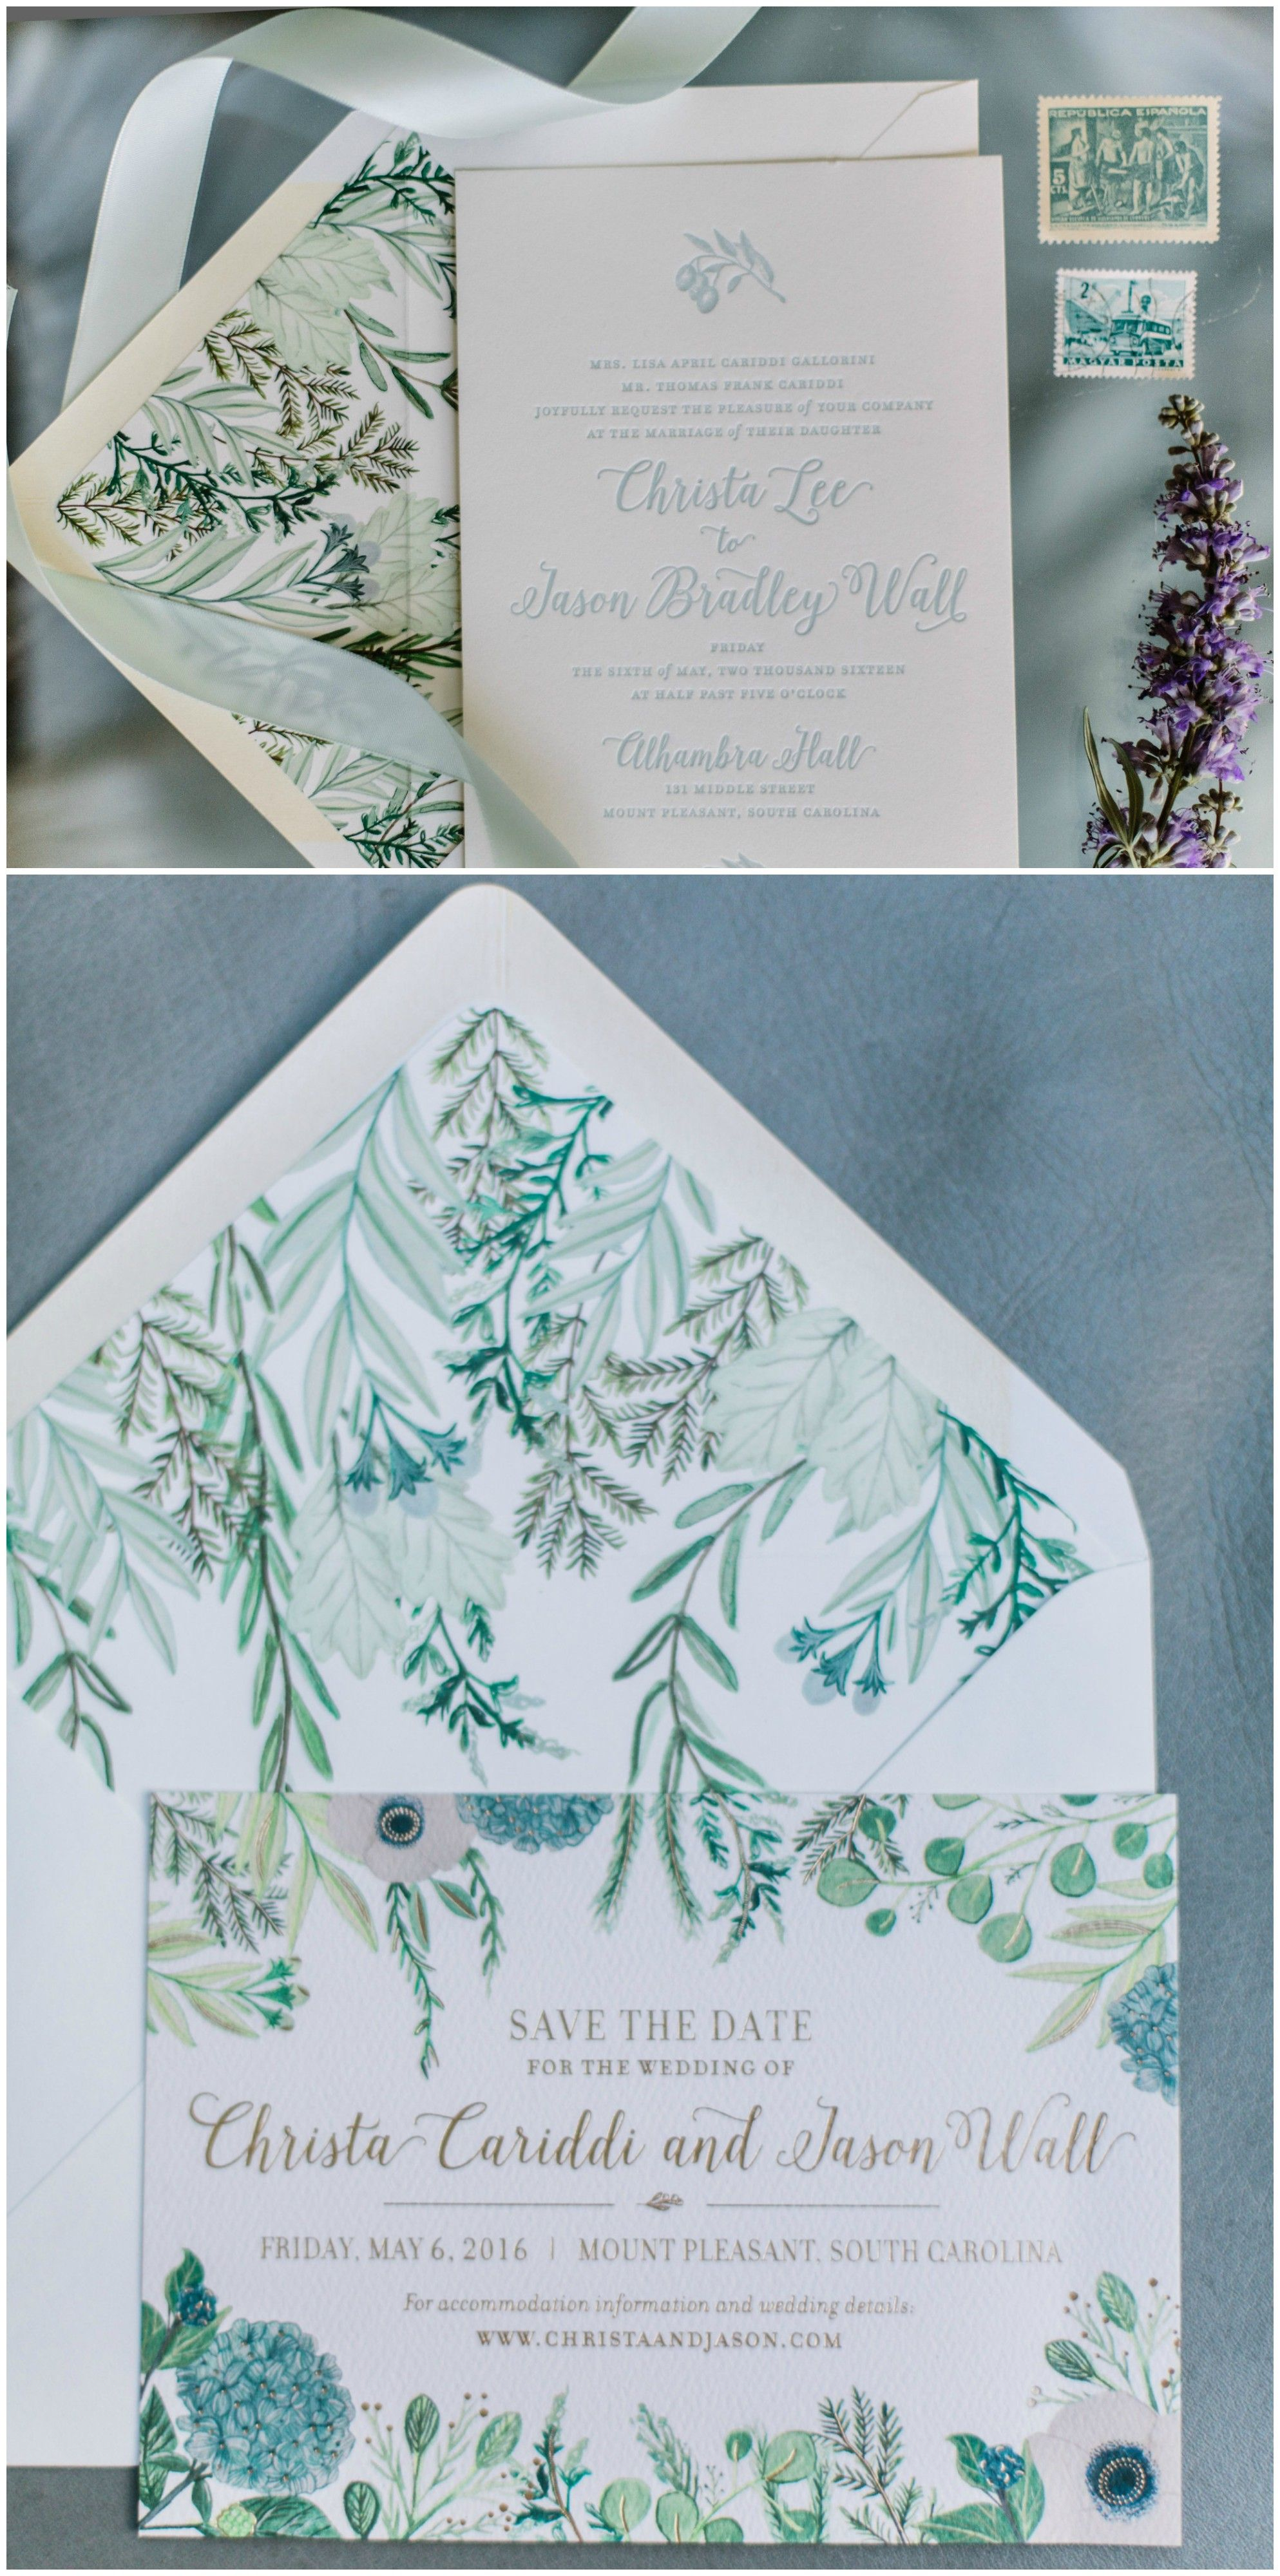 The Smarter Way to Wed | Teal wedding invitations, Teal weddings and ...